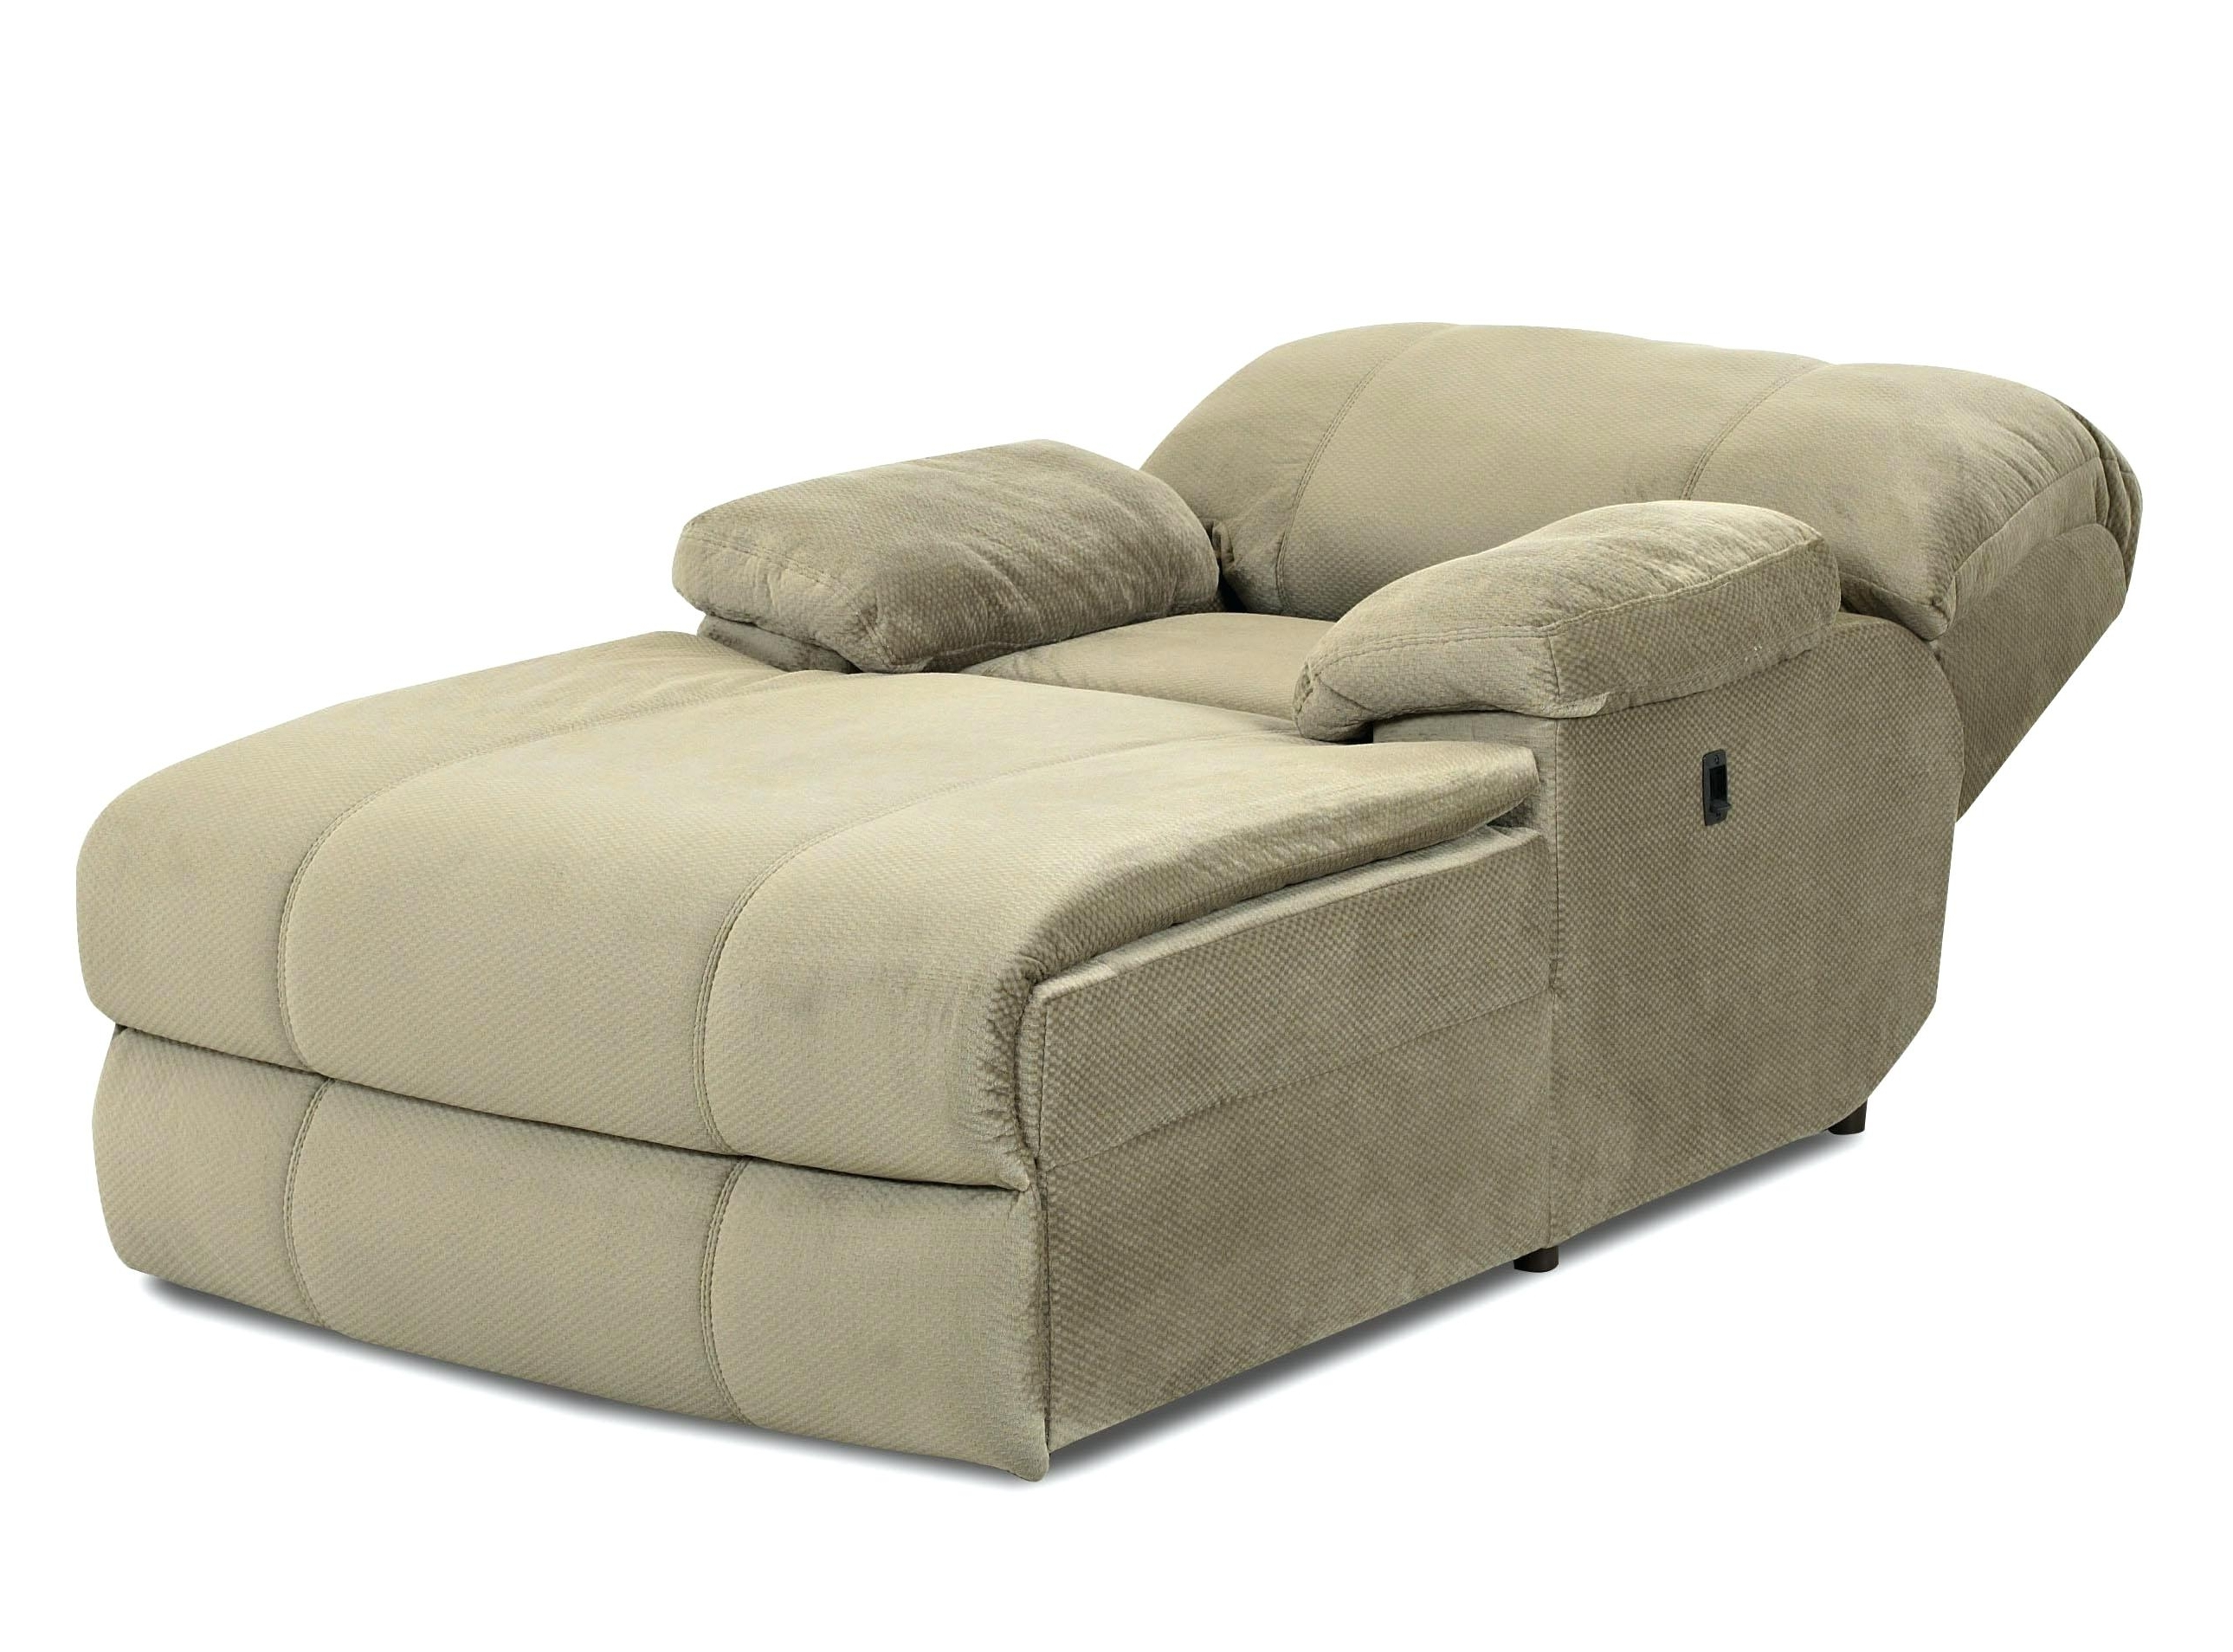 Chaise Lounge Chairs With Arms Slipcover Pertaining To Most Up To Date Chaise Lounge Chair With Arms Indoor • Lounge Chairs Ideas (View 3 of 15)